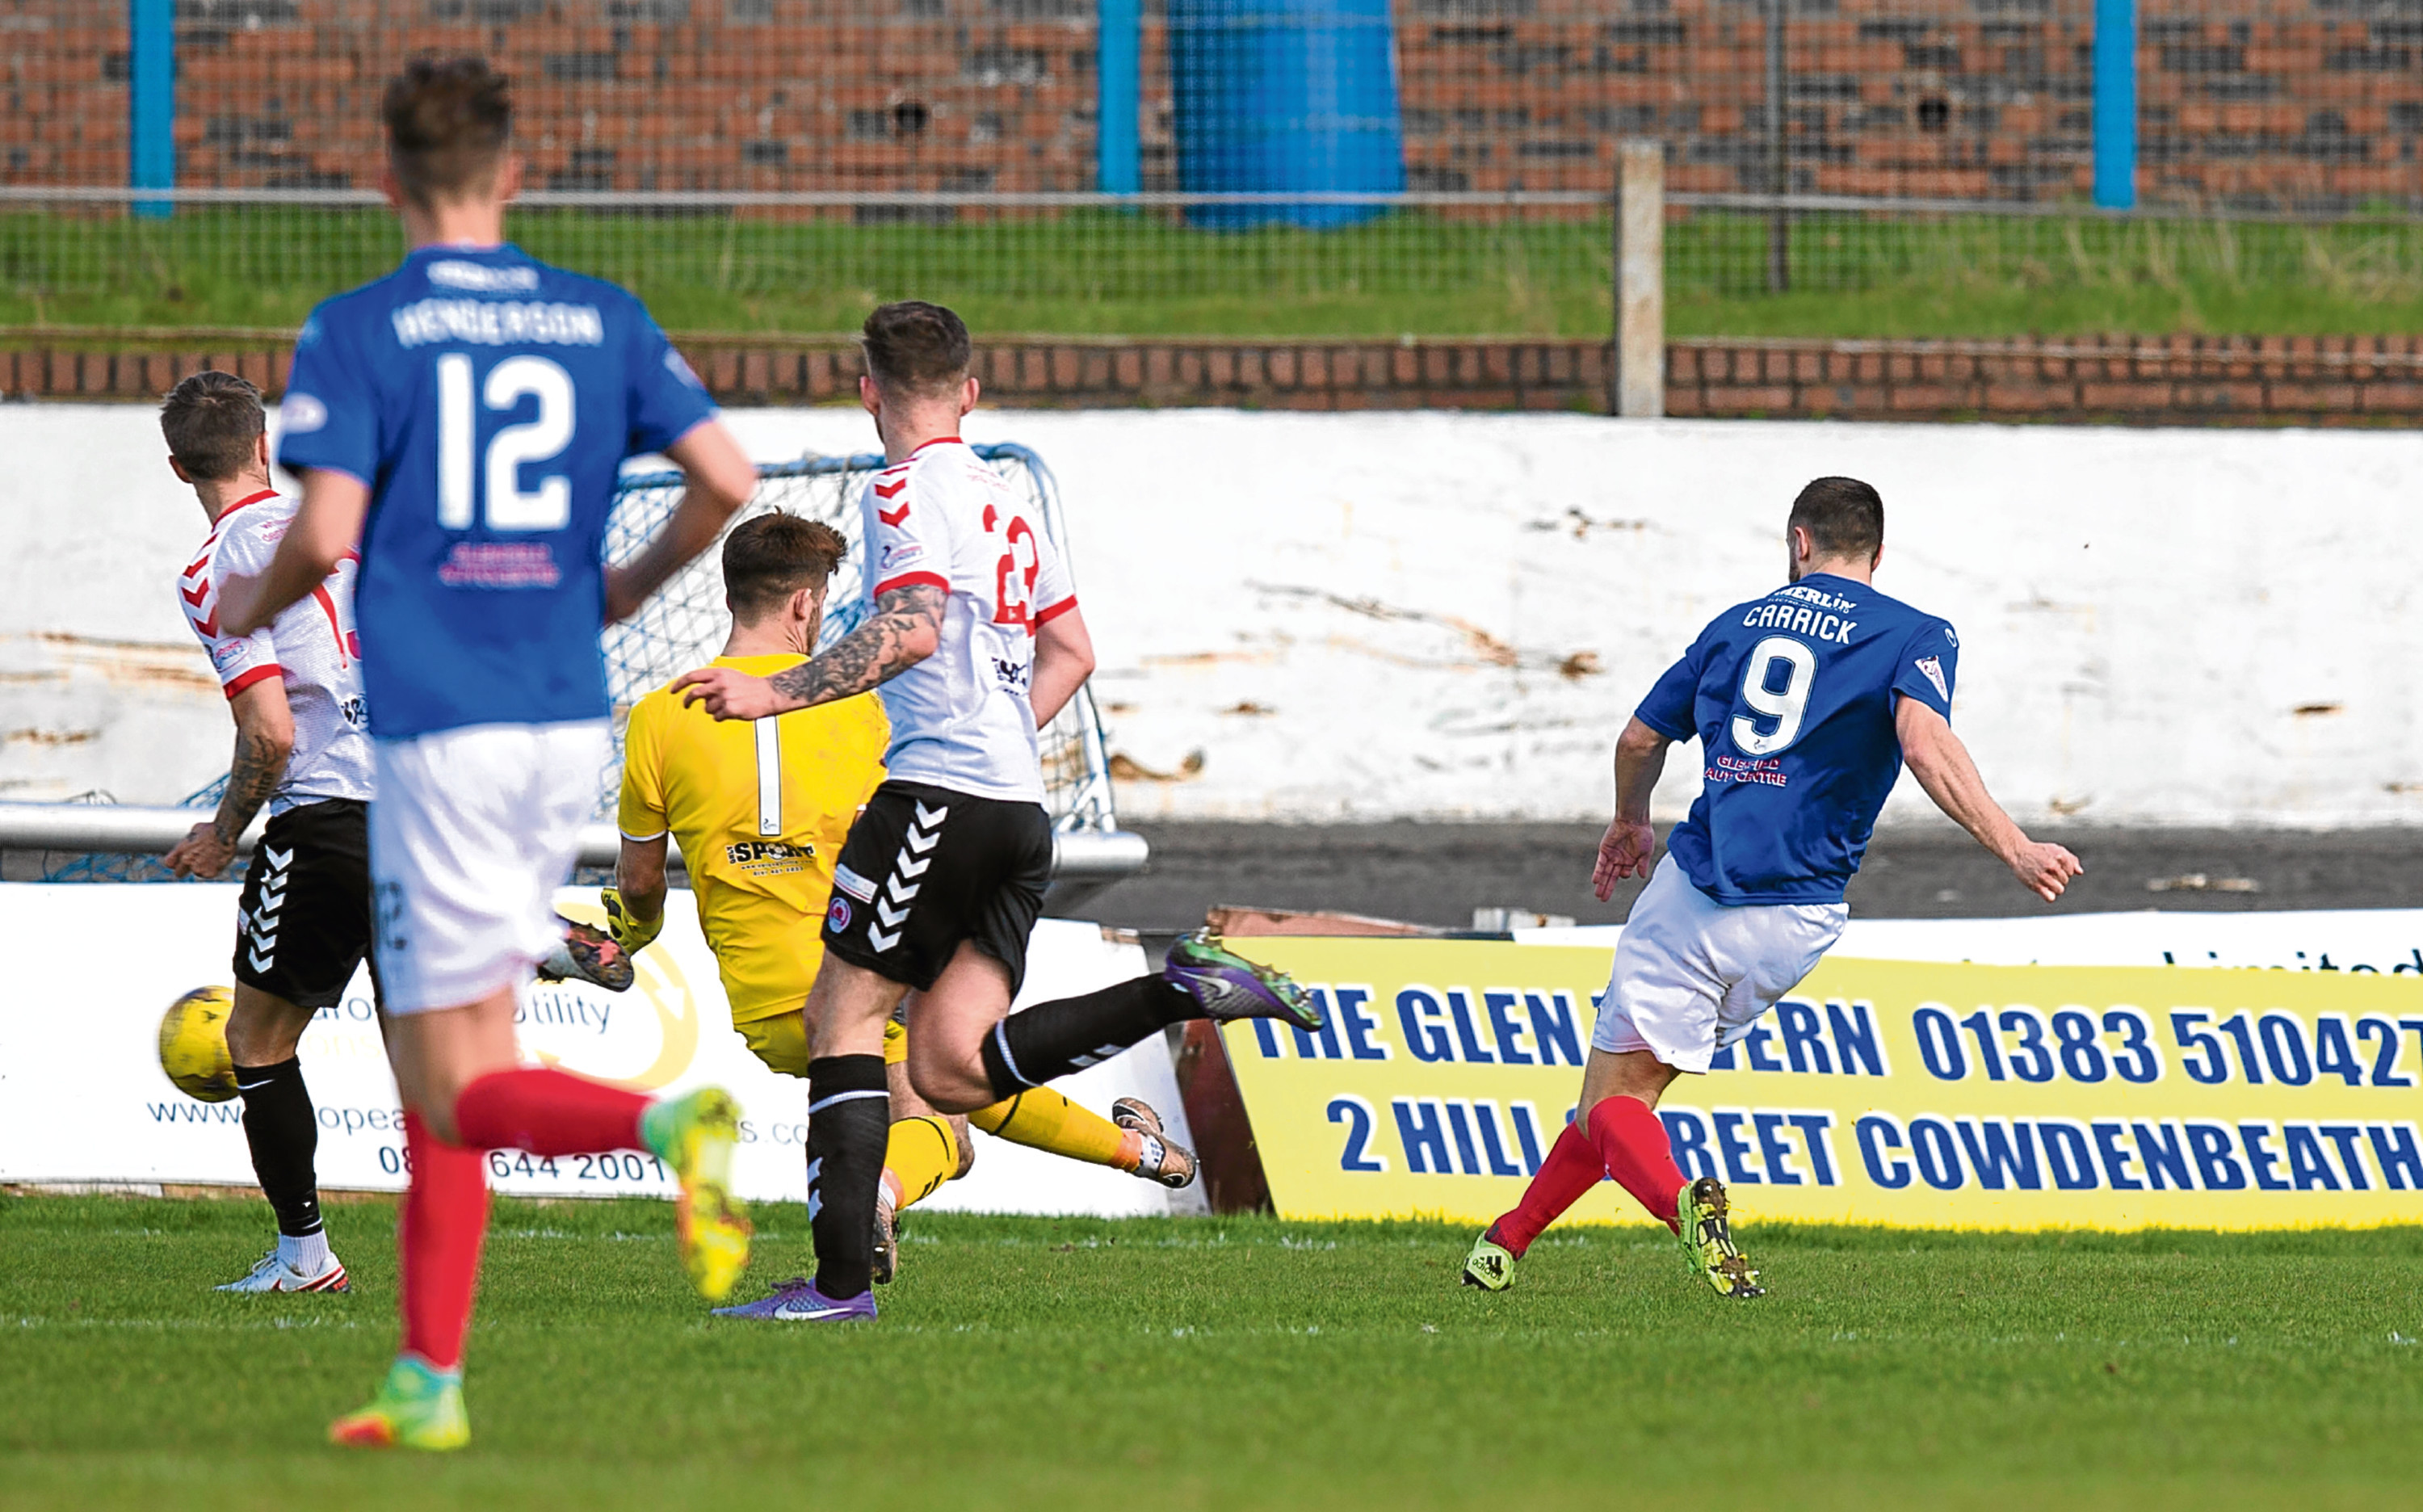 Cowdenbeath's Dale Carrick (right) opens the scoring.